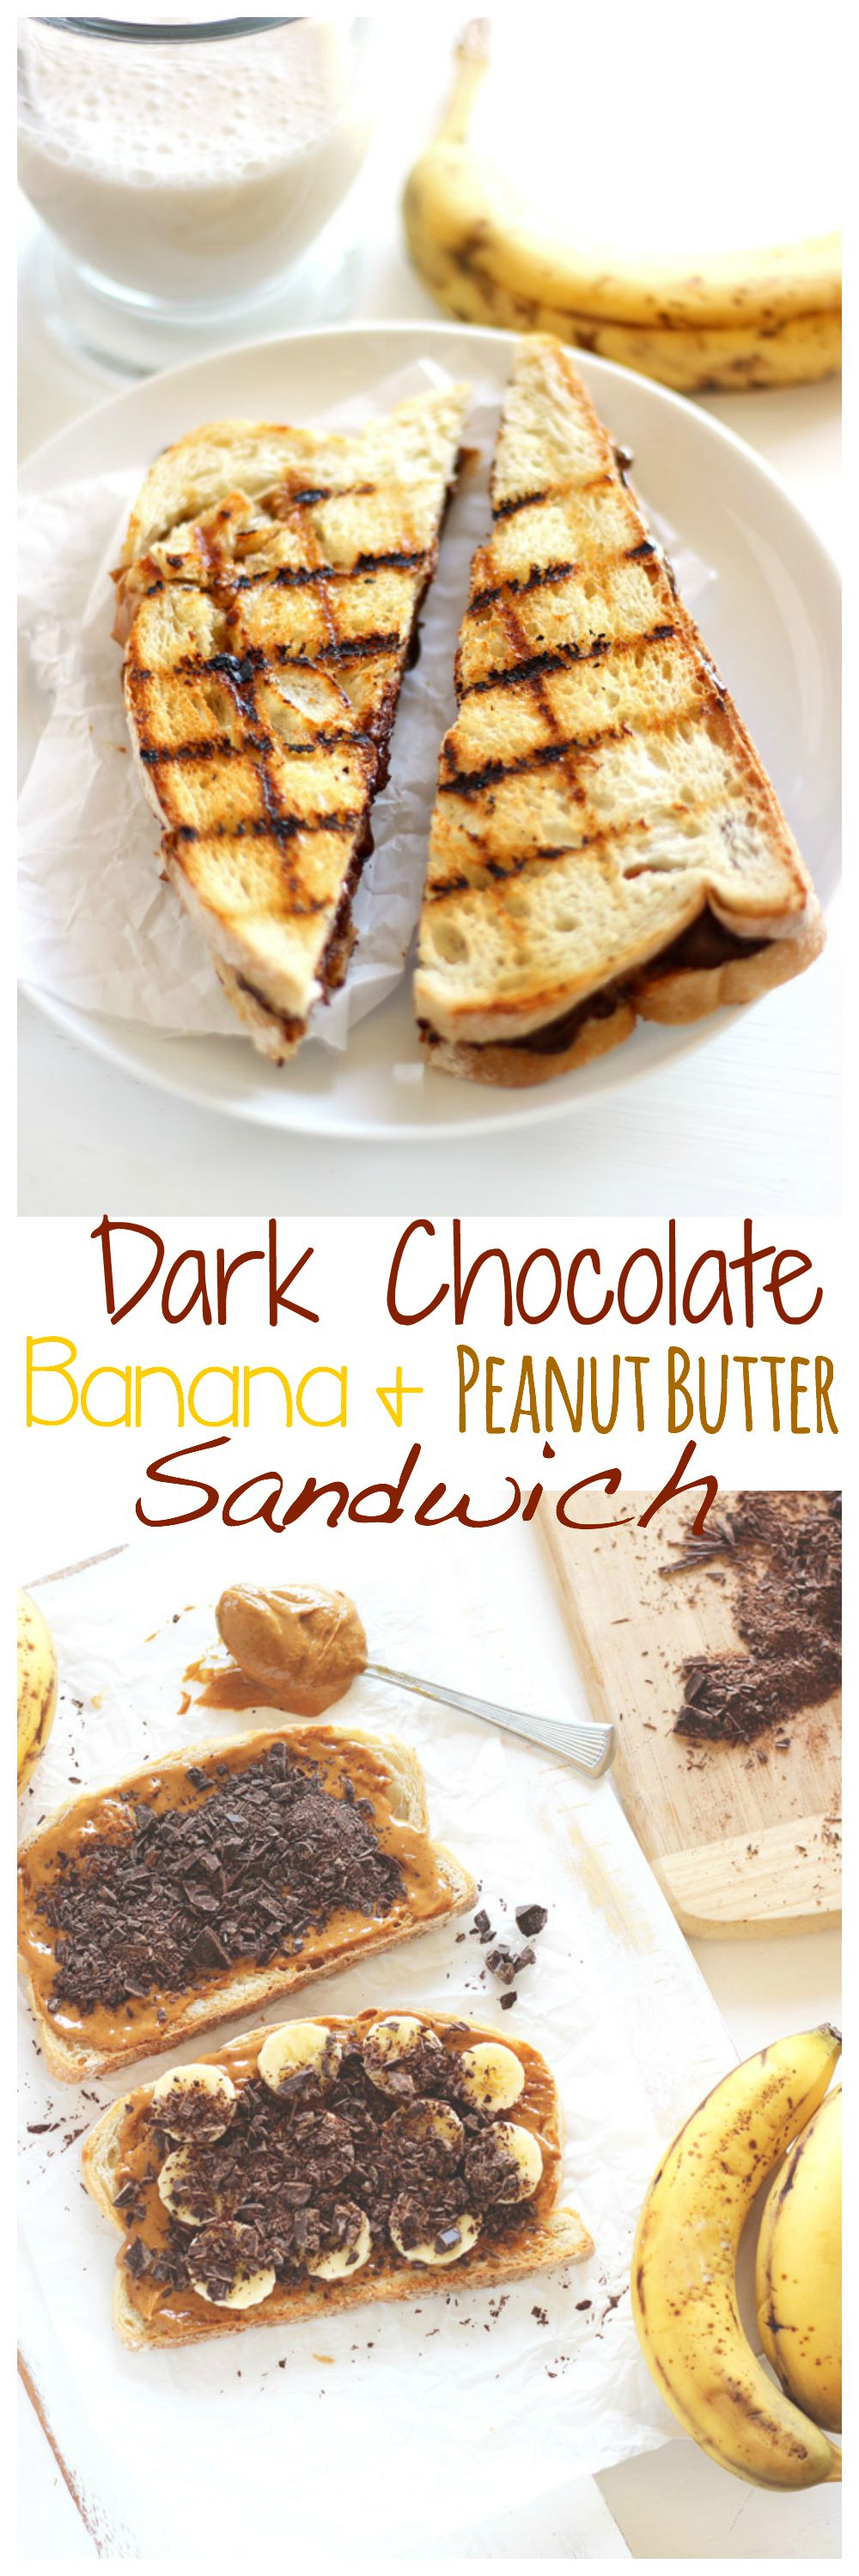 Grilled Chocolate Banana and Peanut Butter Sandwich. Melted dark chocolate, creamy peanut butter and sweet bananas all wrapped up in one sandwich. All this amazingness in each and every bite! neuroticmommy.com #vegan #healthy